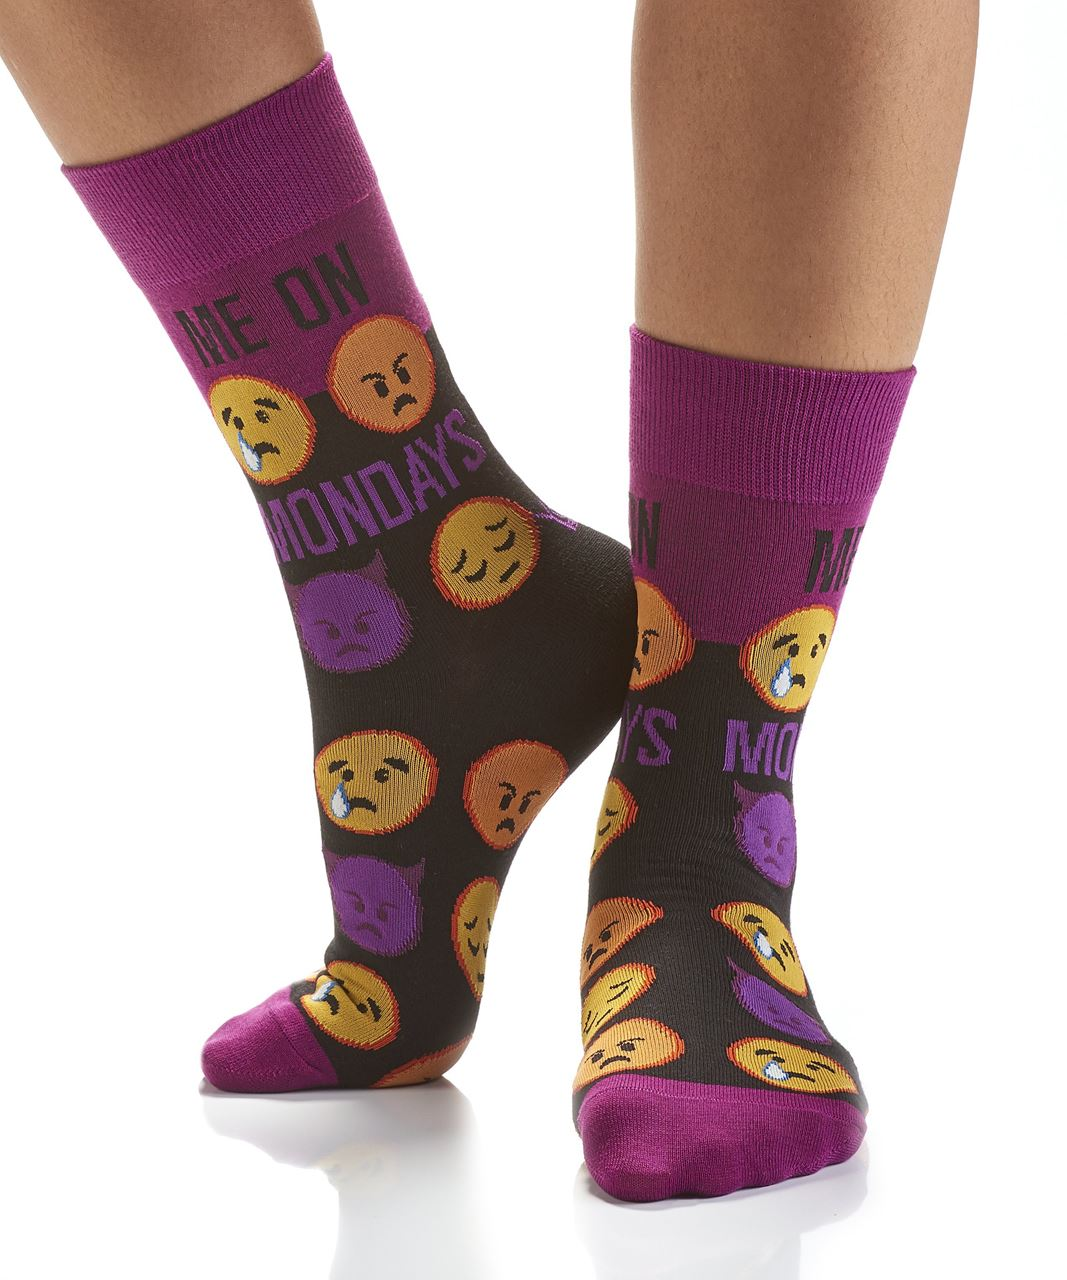 Monday Mornings Women's Crew Socks by Yo Sox